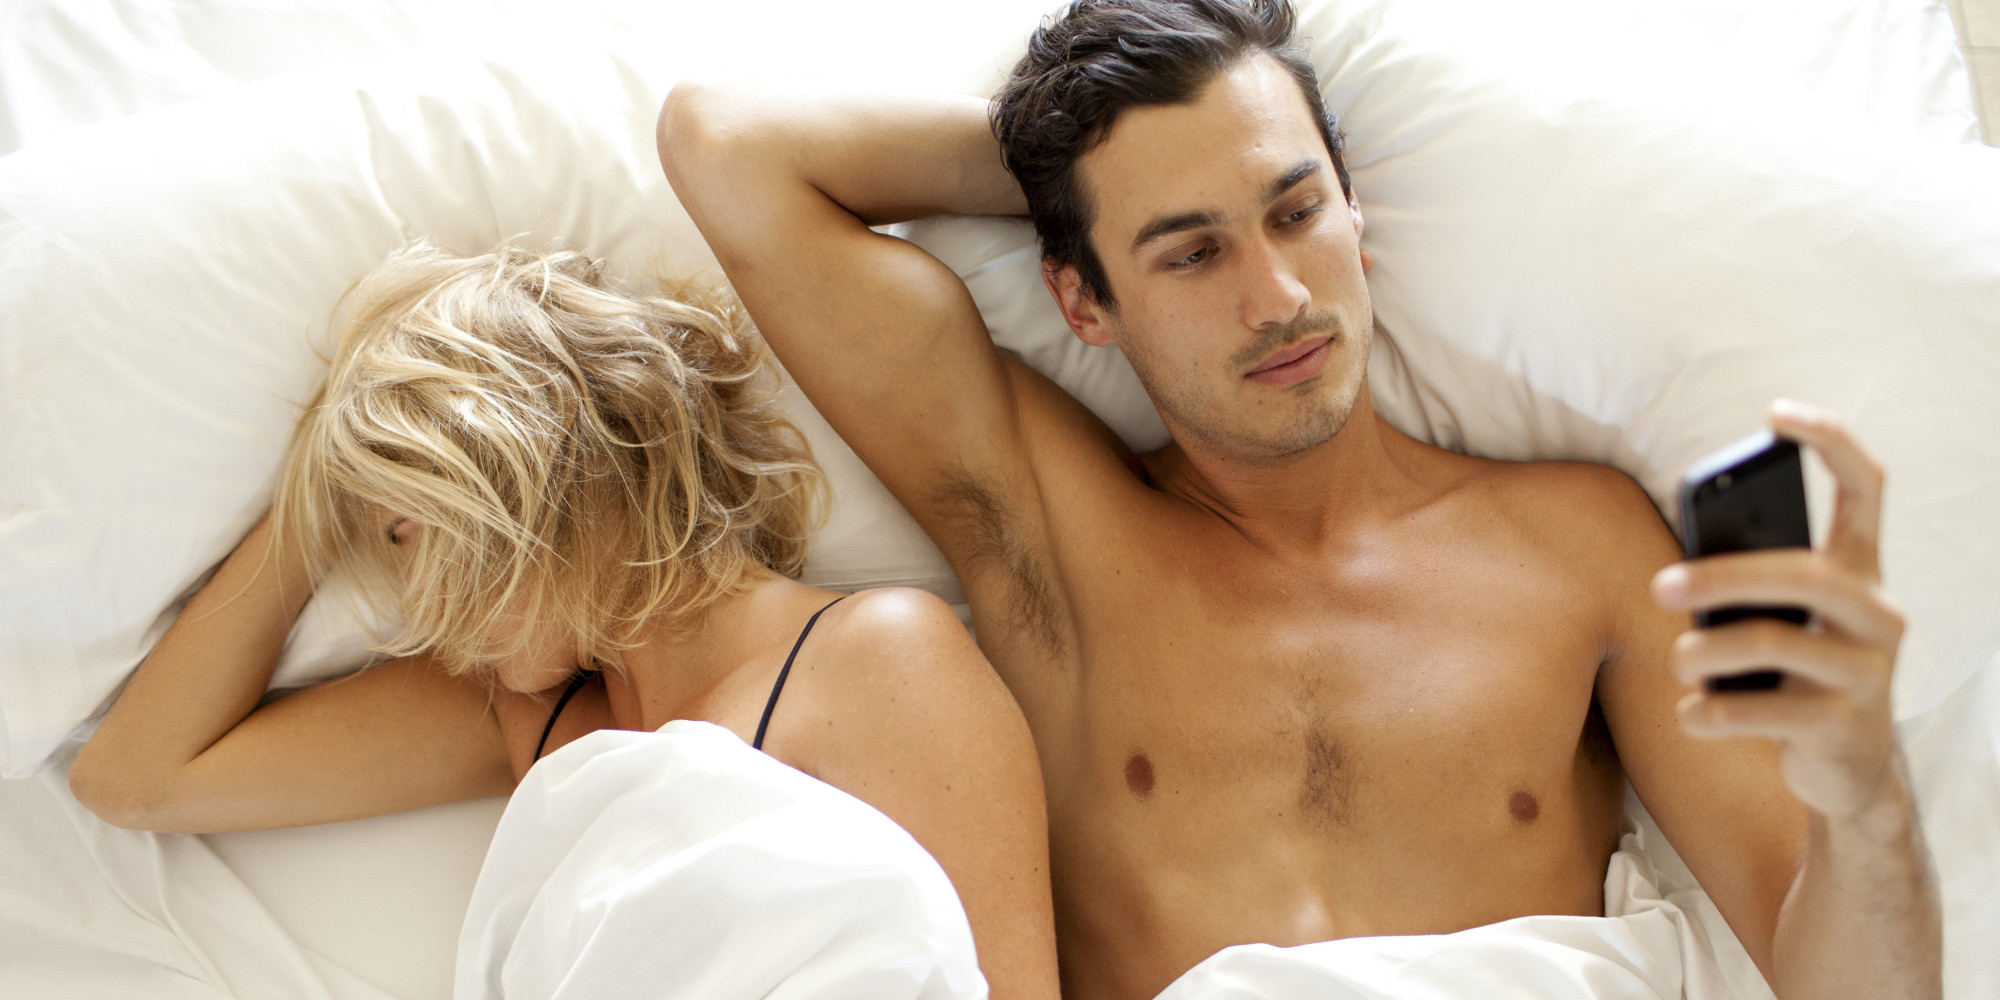 http://i.huffpost.com/gen/3975212/images/o-COUPLE-IN-BED-PHONE-facebook.jpg